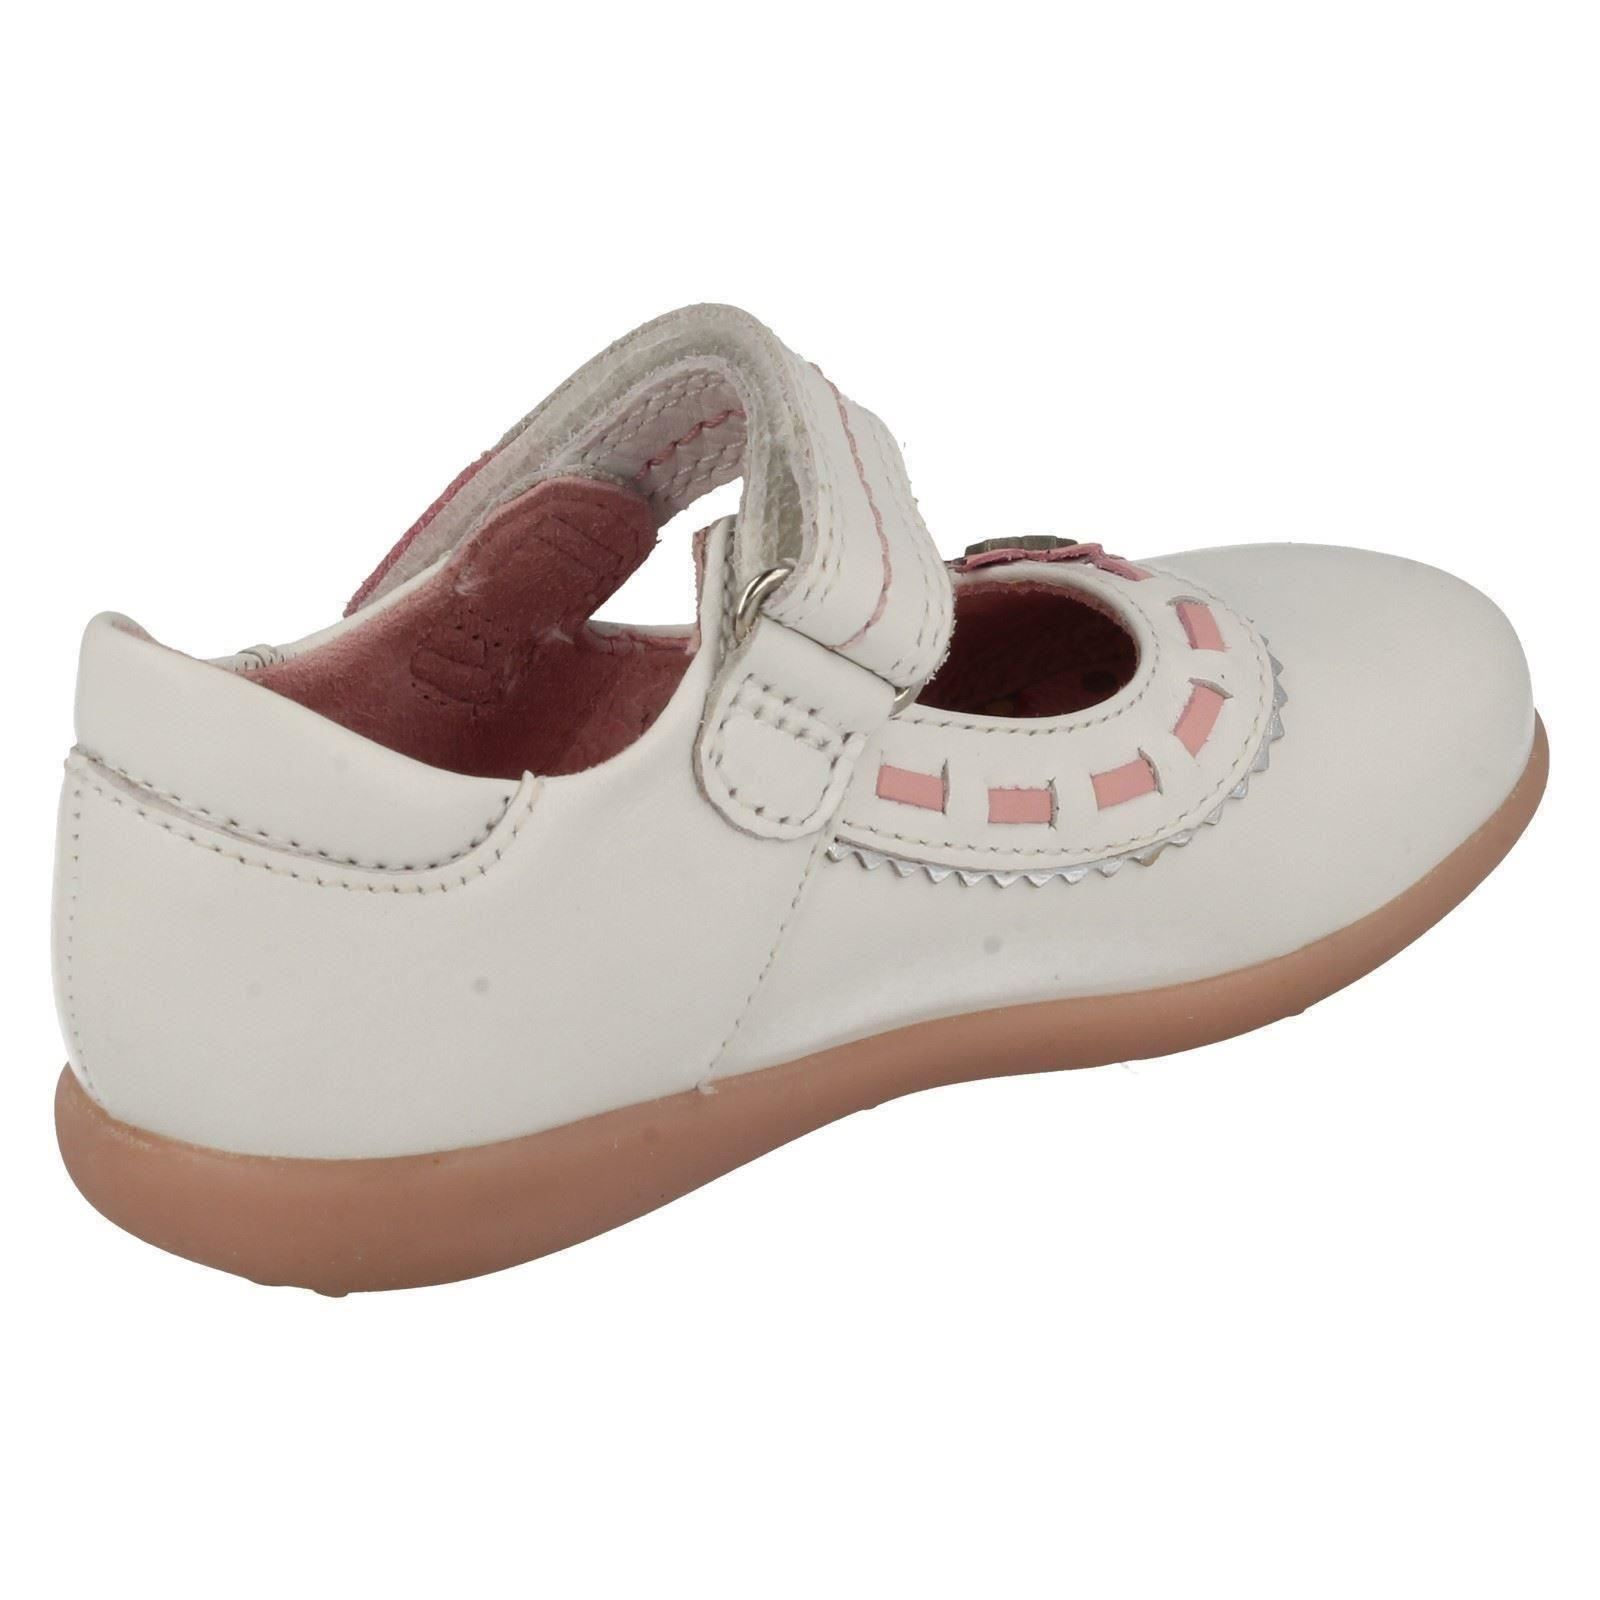 Girls Startrite Mary Jane Style Casual Shoes - Ella